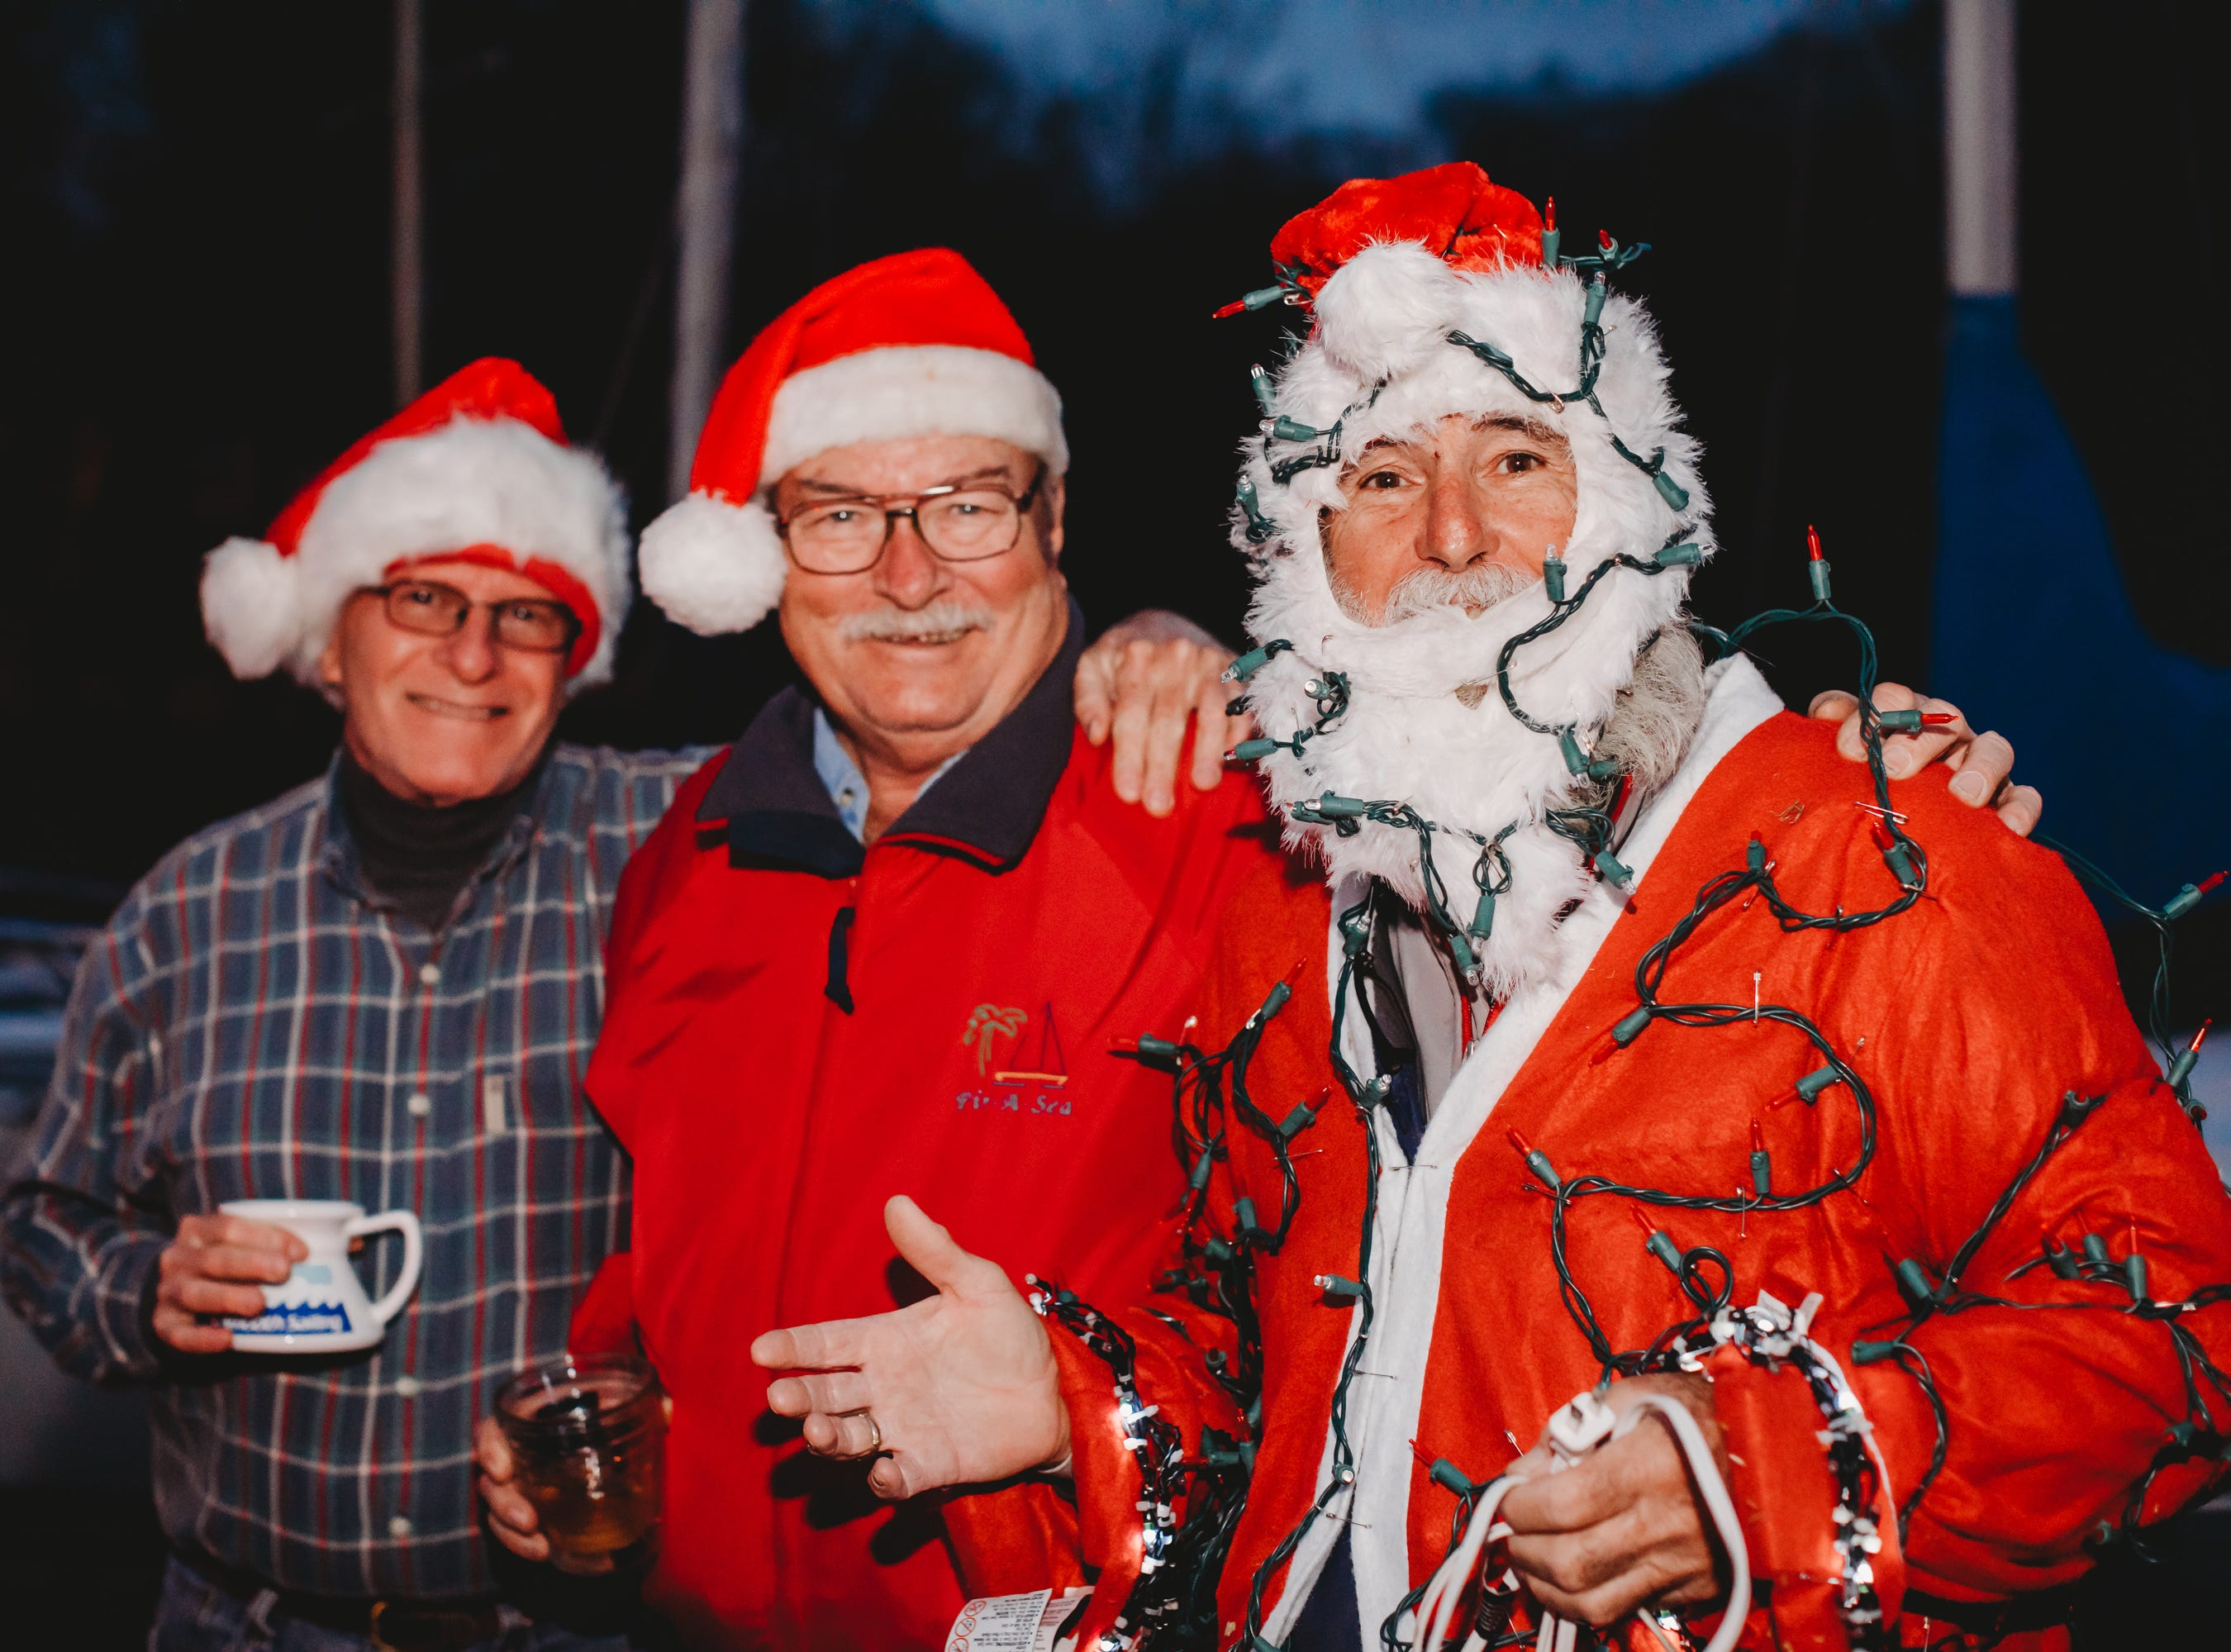 DJ Johnson, Van Vantleven, and Ron Sanga show off their Santa hats before the launch The Western Carolina Sailing Club held their Cruising Fleet Annual Parade of Lights on Lake Hartwell in Anderson Friday, December 7, 2018.